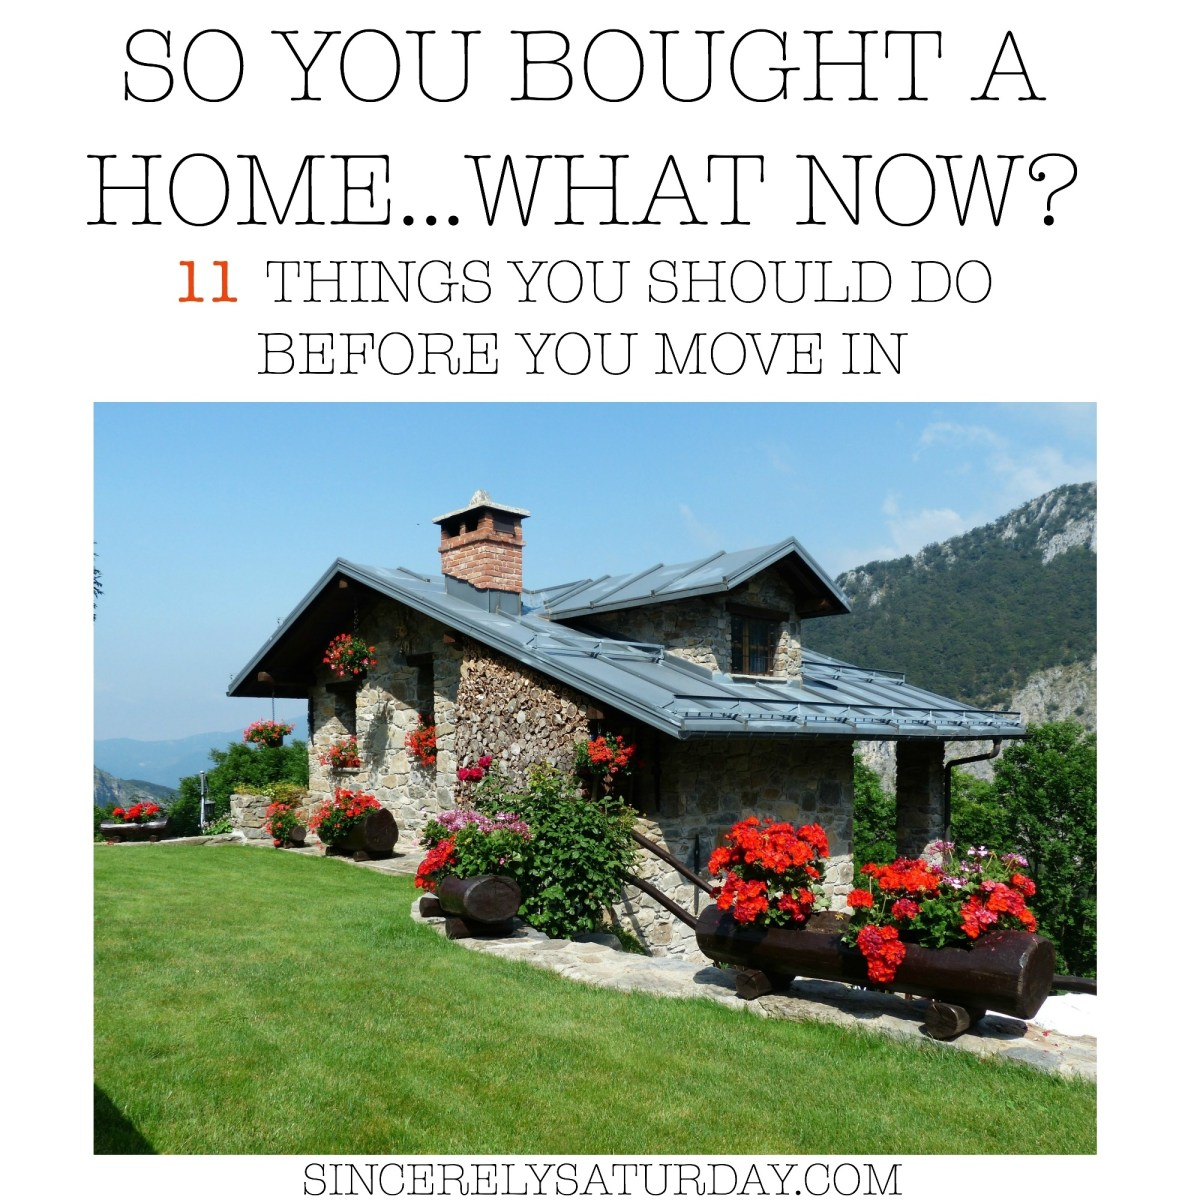 SO YOU BOUGHT A HOME...WHAT NOW? - 11 THINGS YOU SHOULD DO BEFORE YOU MOVE IN